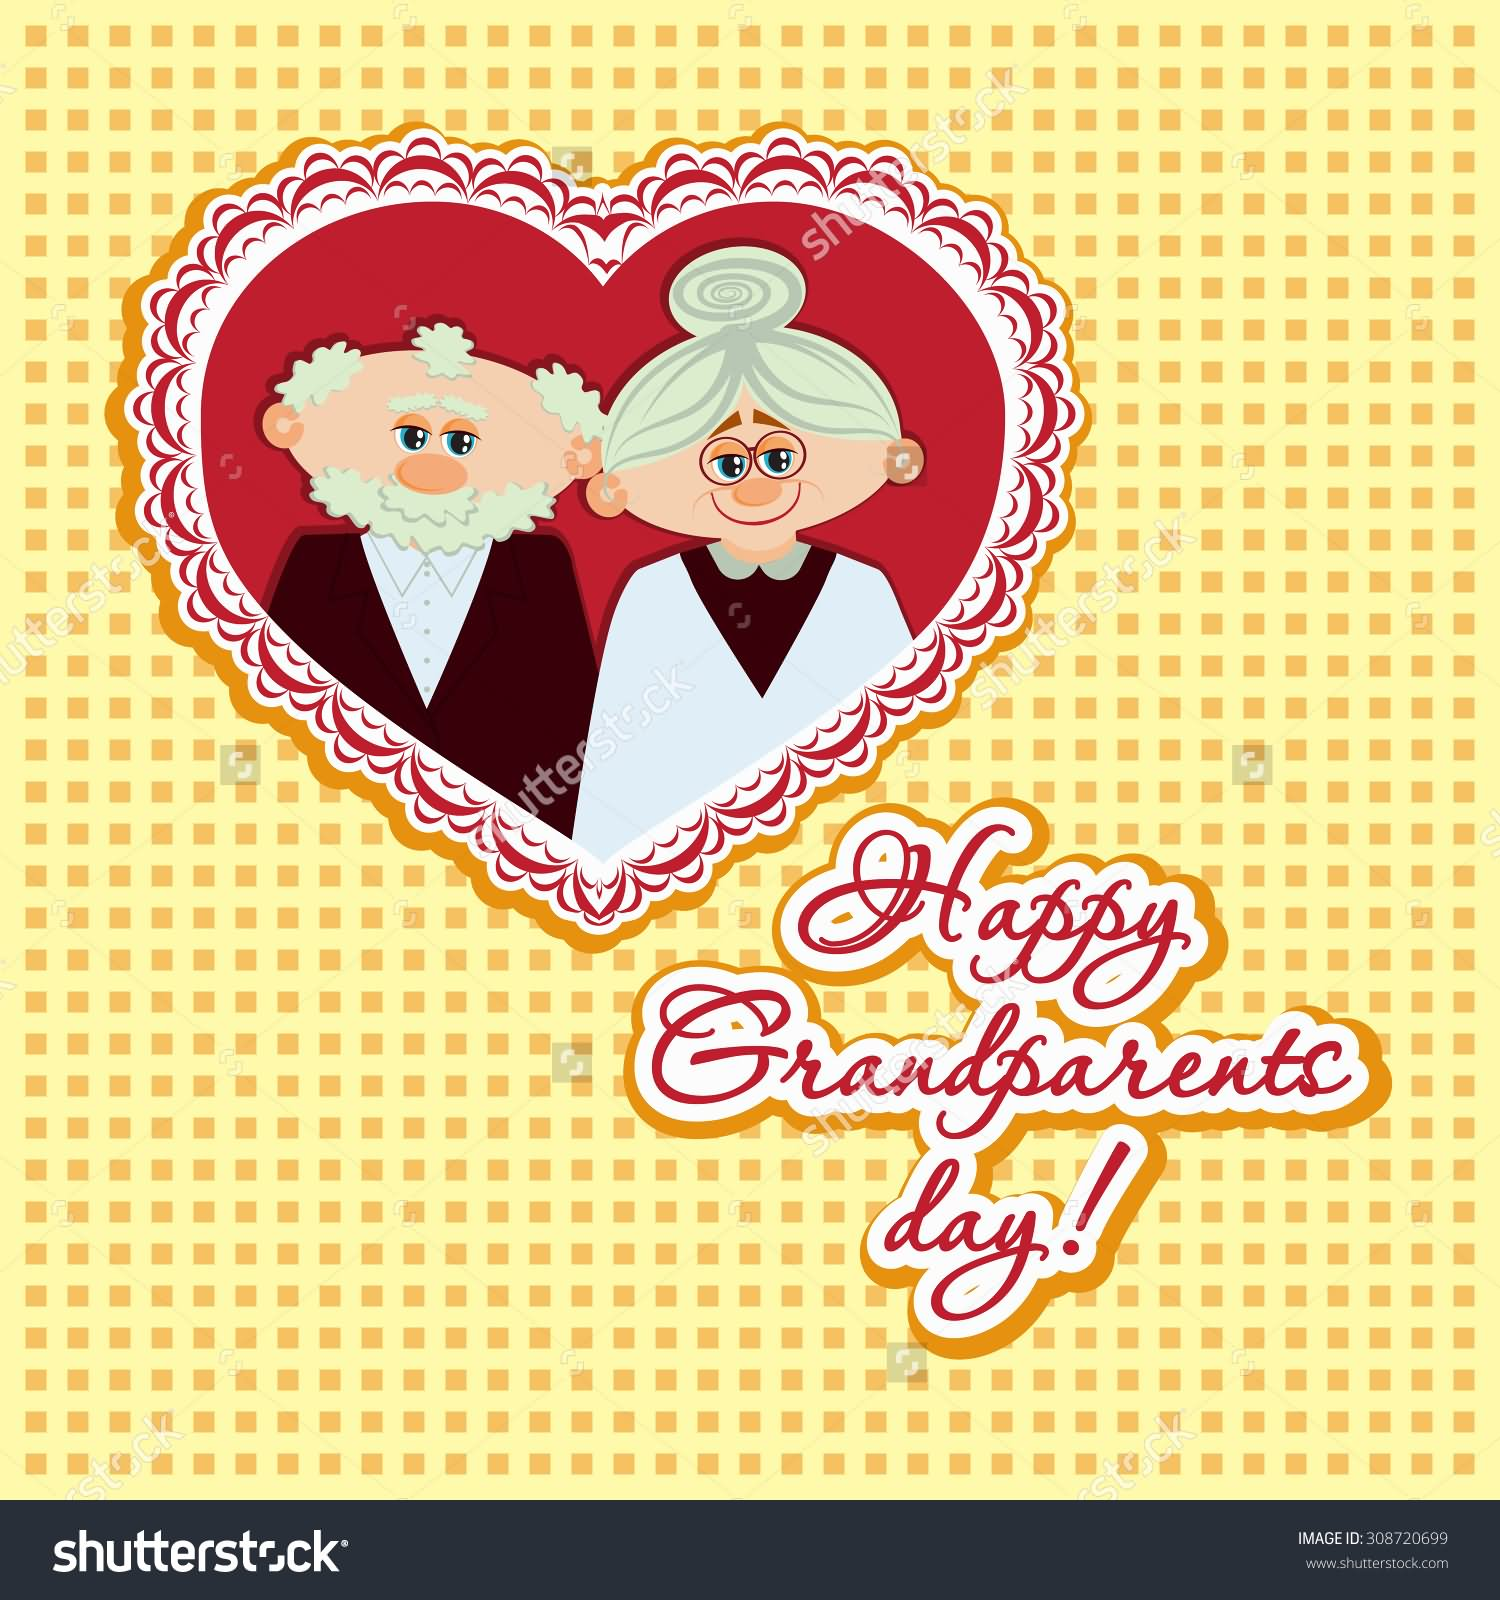 35 most beautiful grandparents day greeting card images happy grandparents day adorable greeting card kristyandbryce Gallery